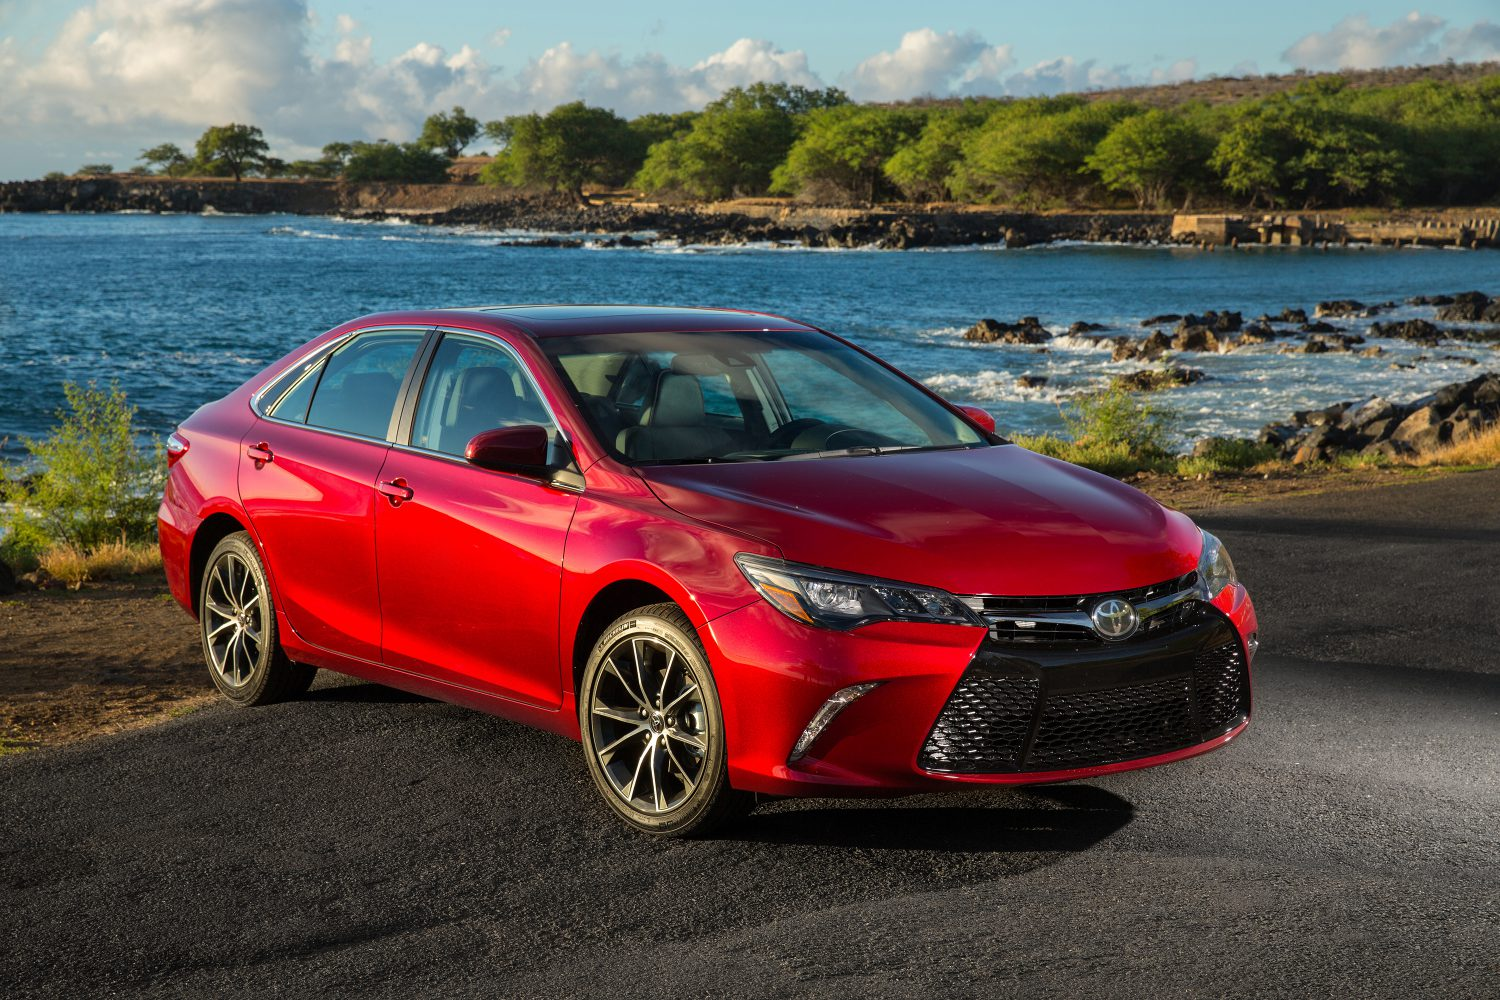 2017 Toyota Camry Reveals Secret for Remaining America's Top